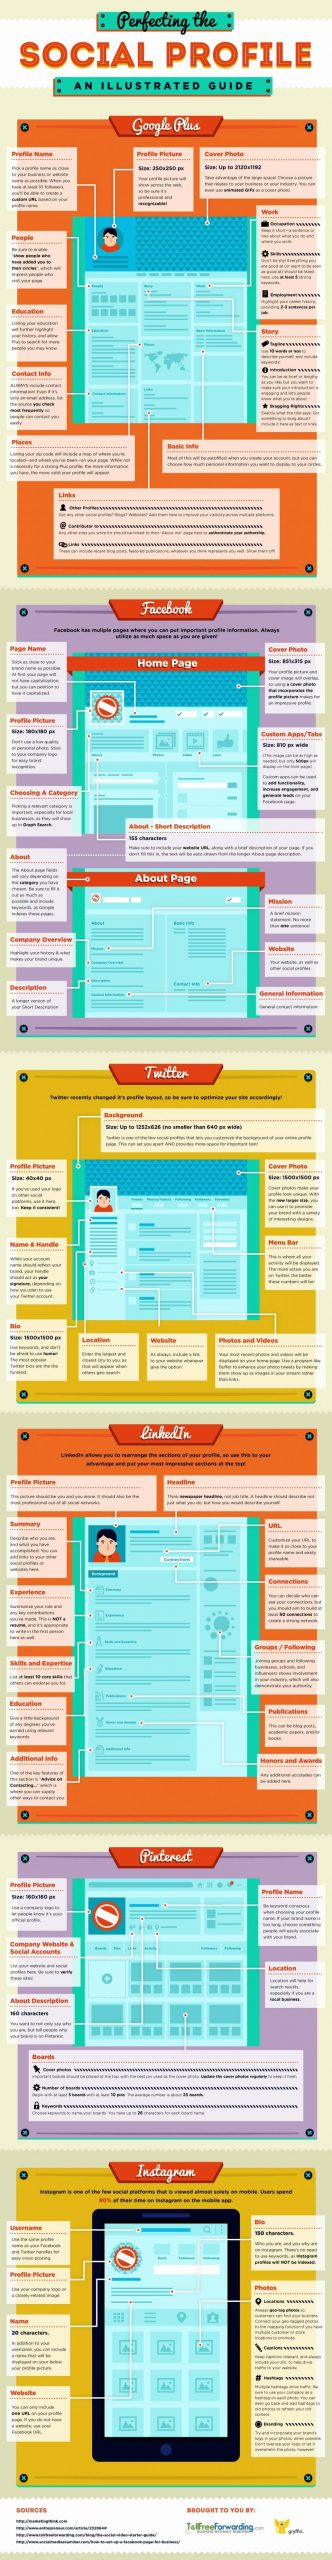 Perfecting the Social Profile An Illustrated Guide